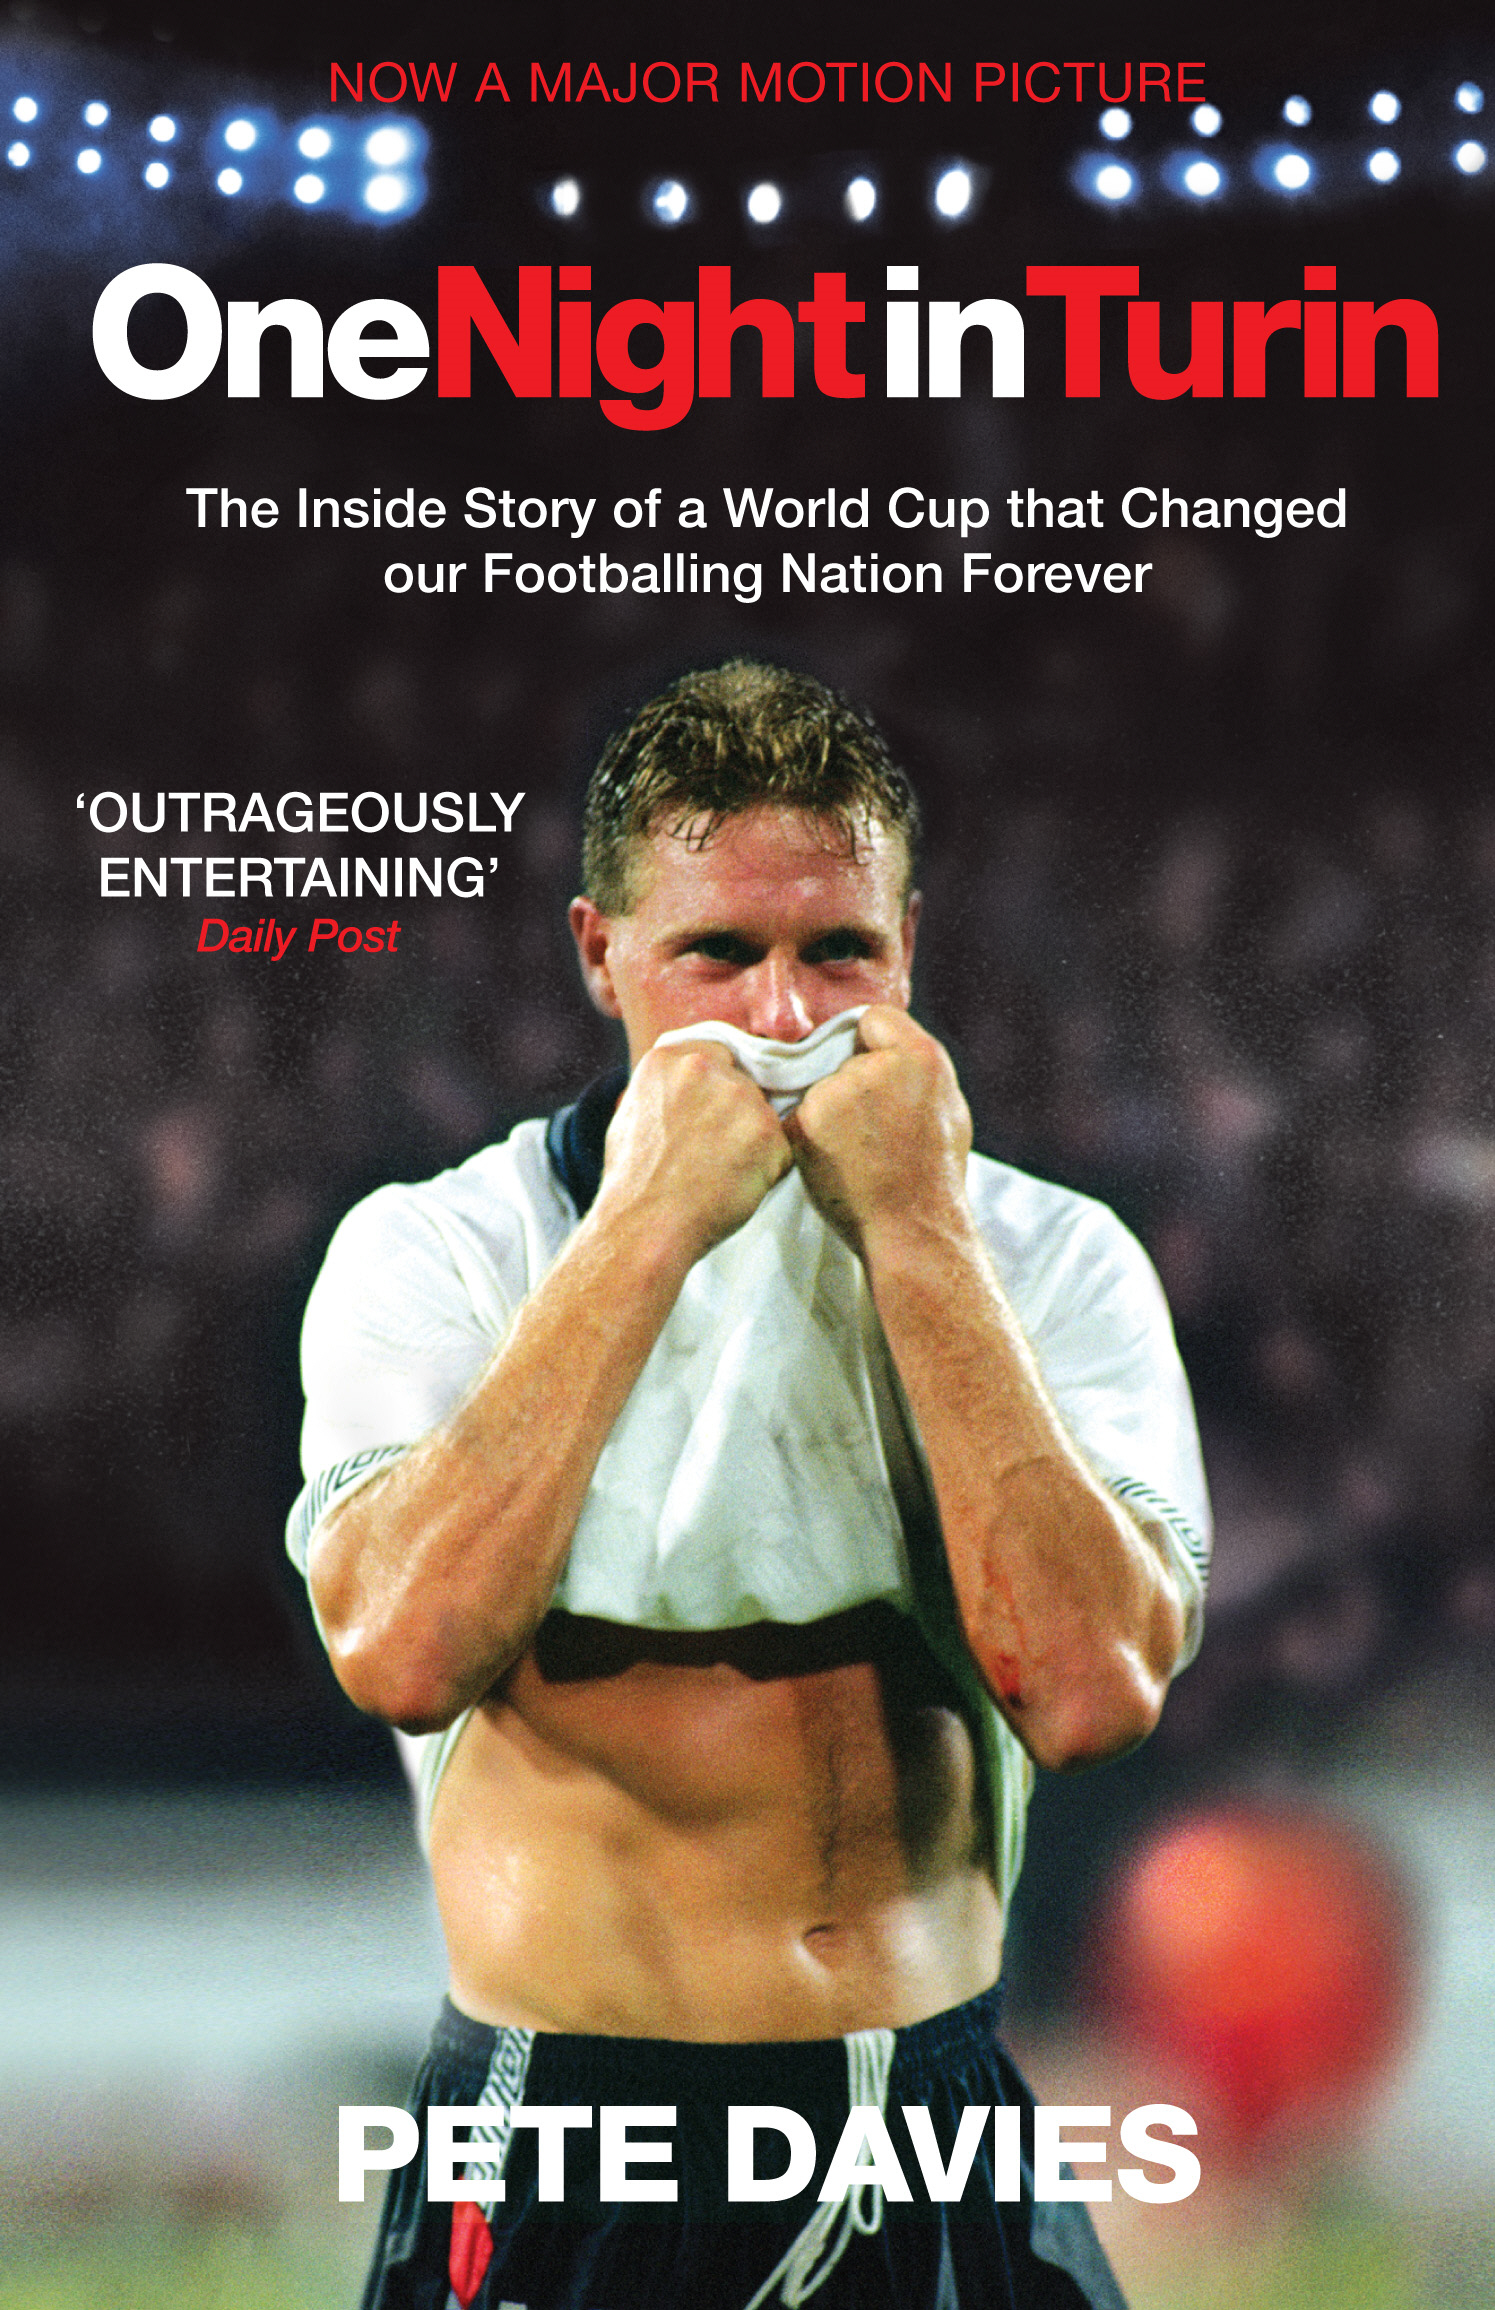 One Night in Turin The Inside Story of a World Cup that Changed our Footballing Nation Forever